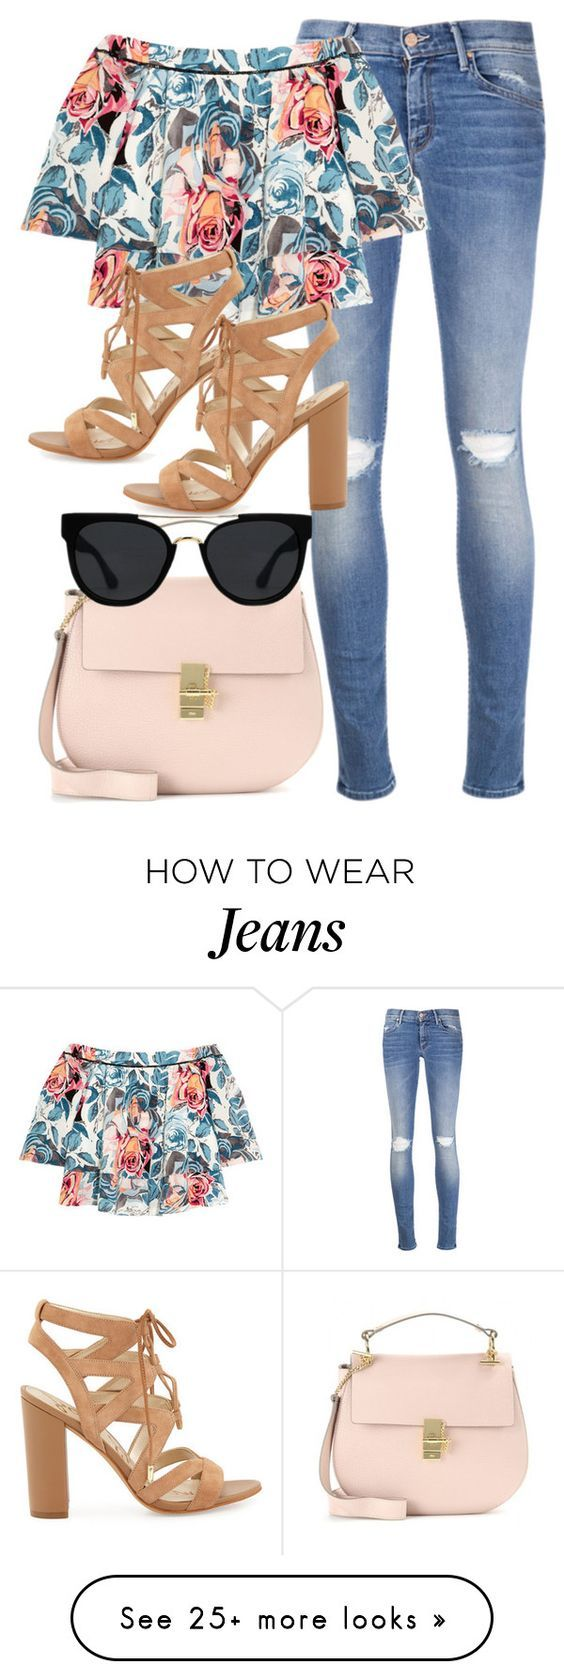 teen outfits 17 sizzlingmagazine - 15+ Cute Outfit Ideas for Teen Girls 2018 – Teenage outfits for School